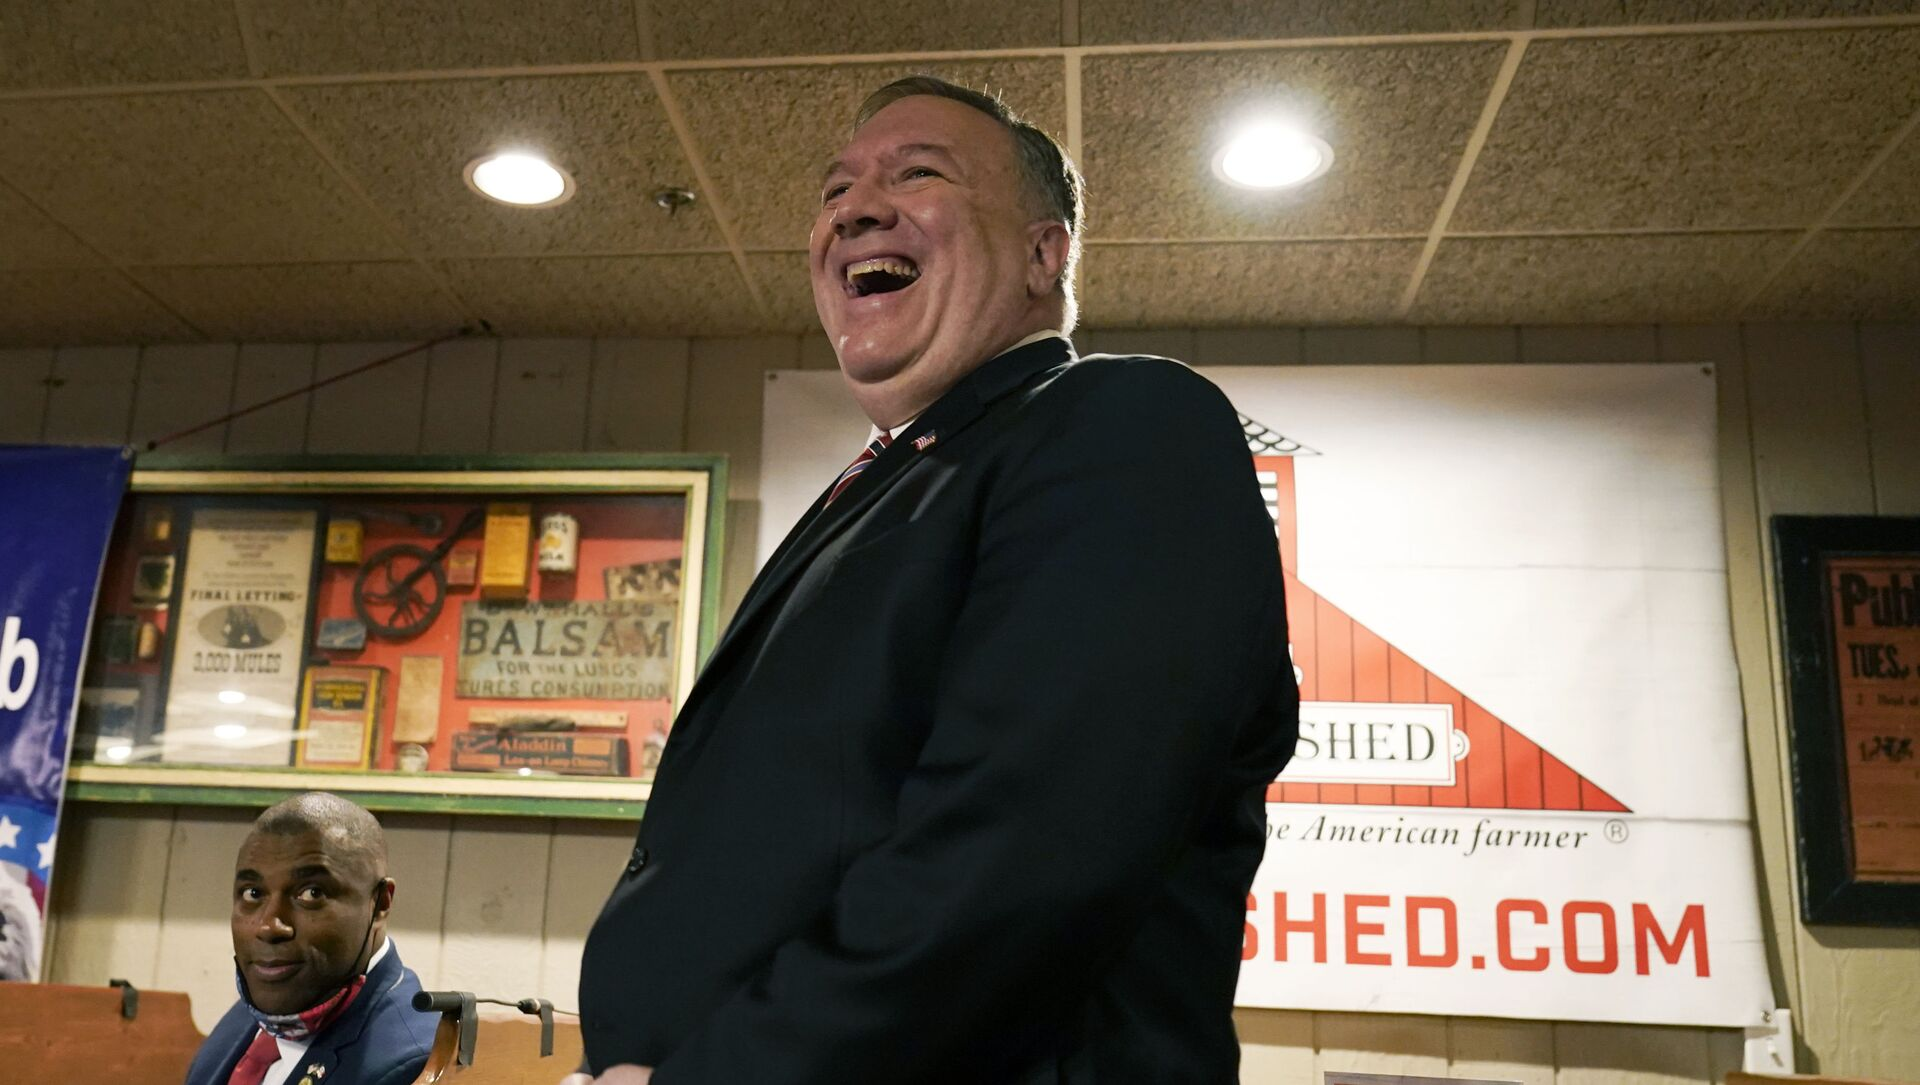 Former Secretary of State Mike Pompeo laughs as he is introduced to speak at the West Side Conservative Club, Friday, March 26, 2021, in Urbandale, Iowa - Sputnik International, 1920, 04.08.2021